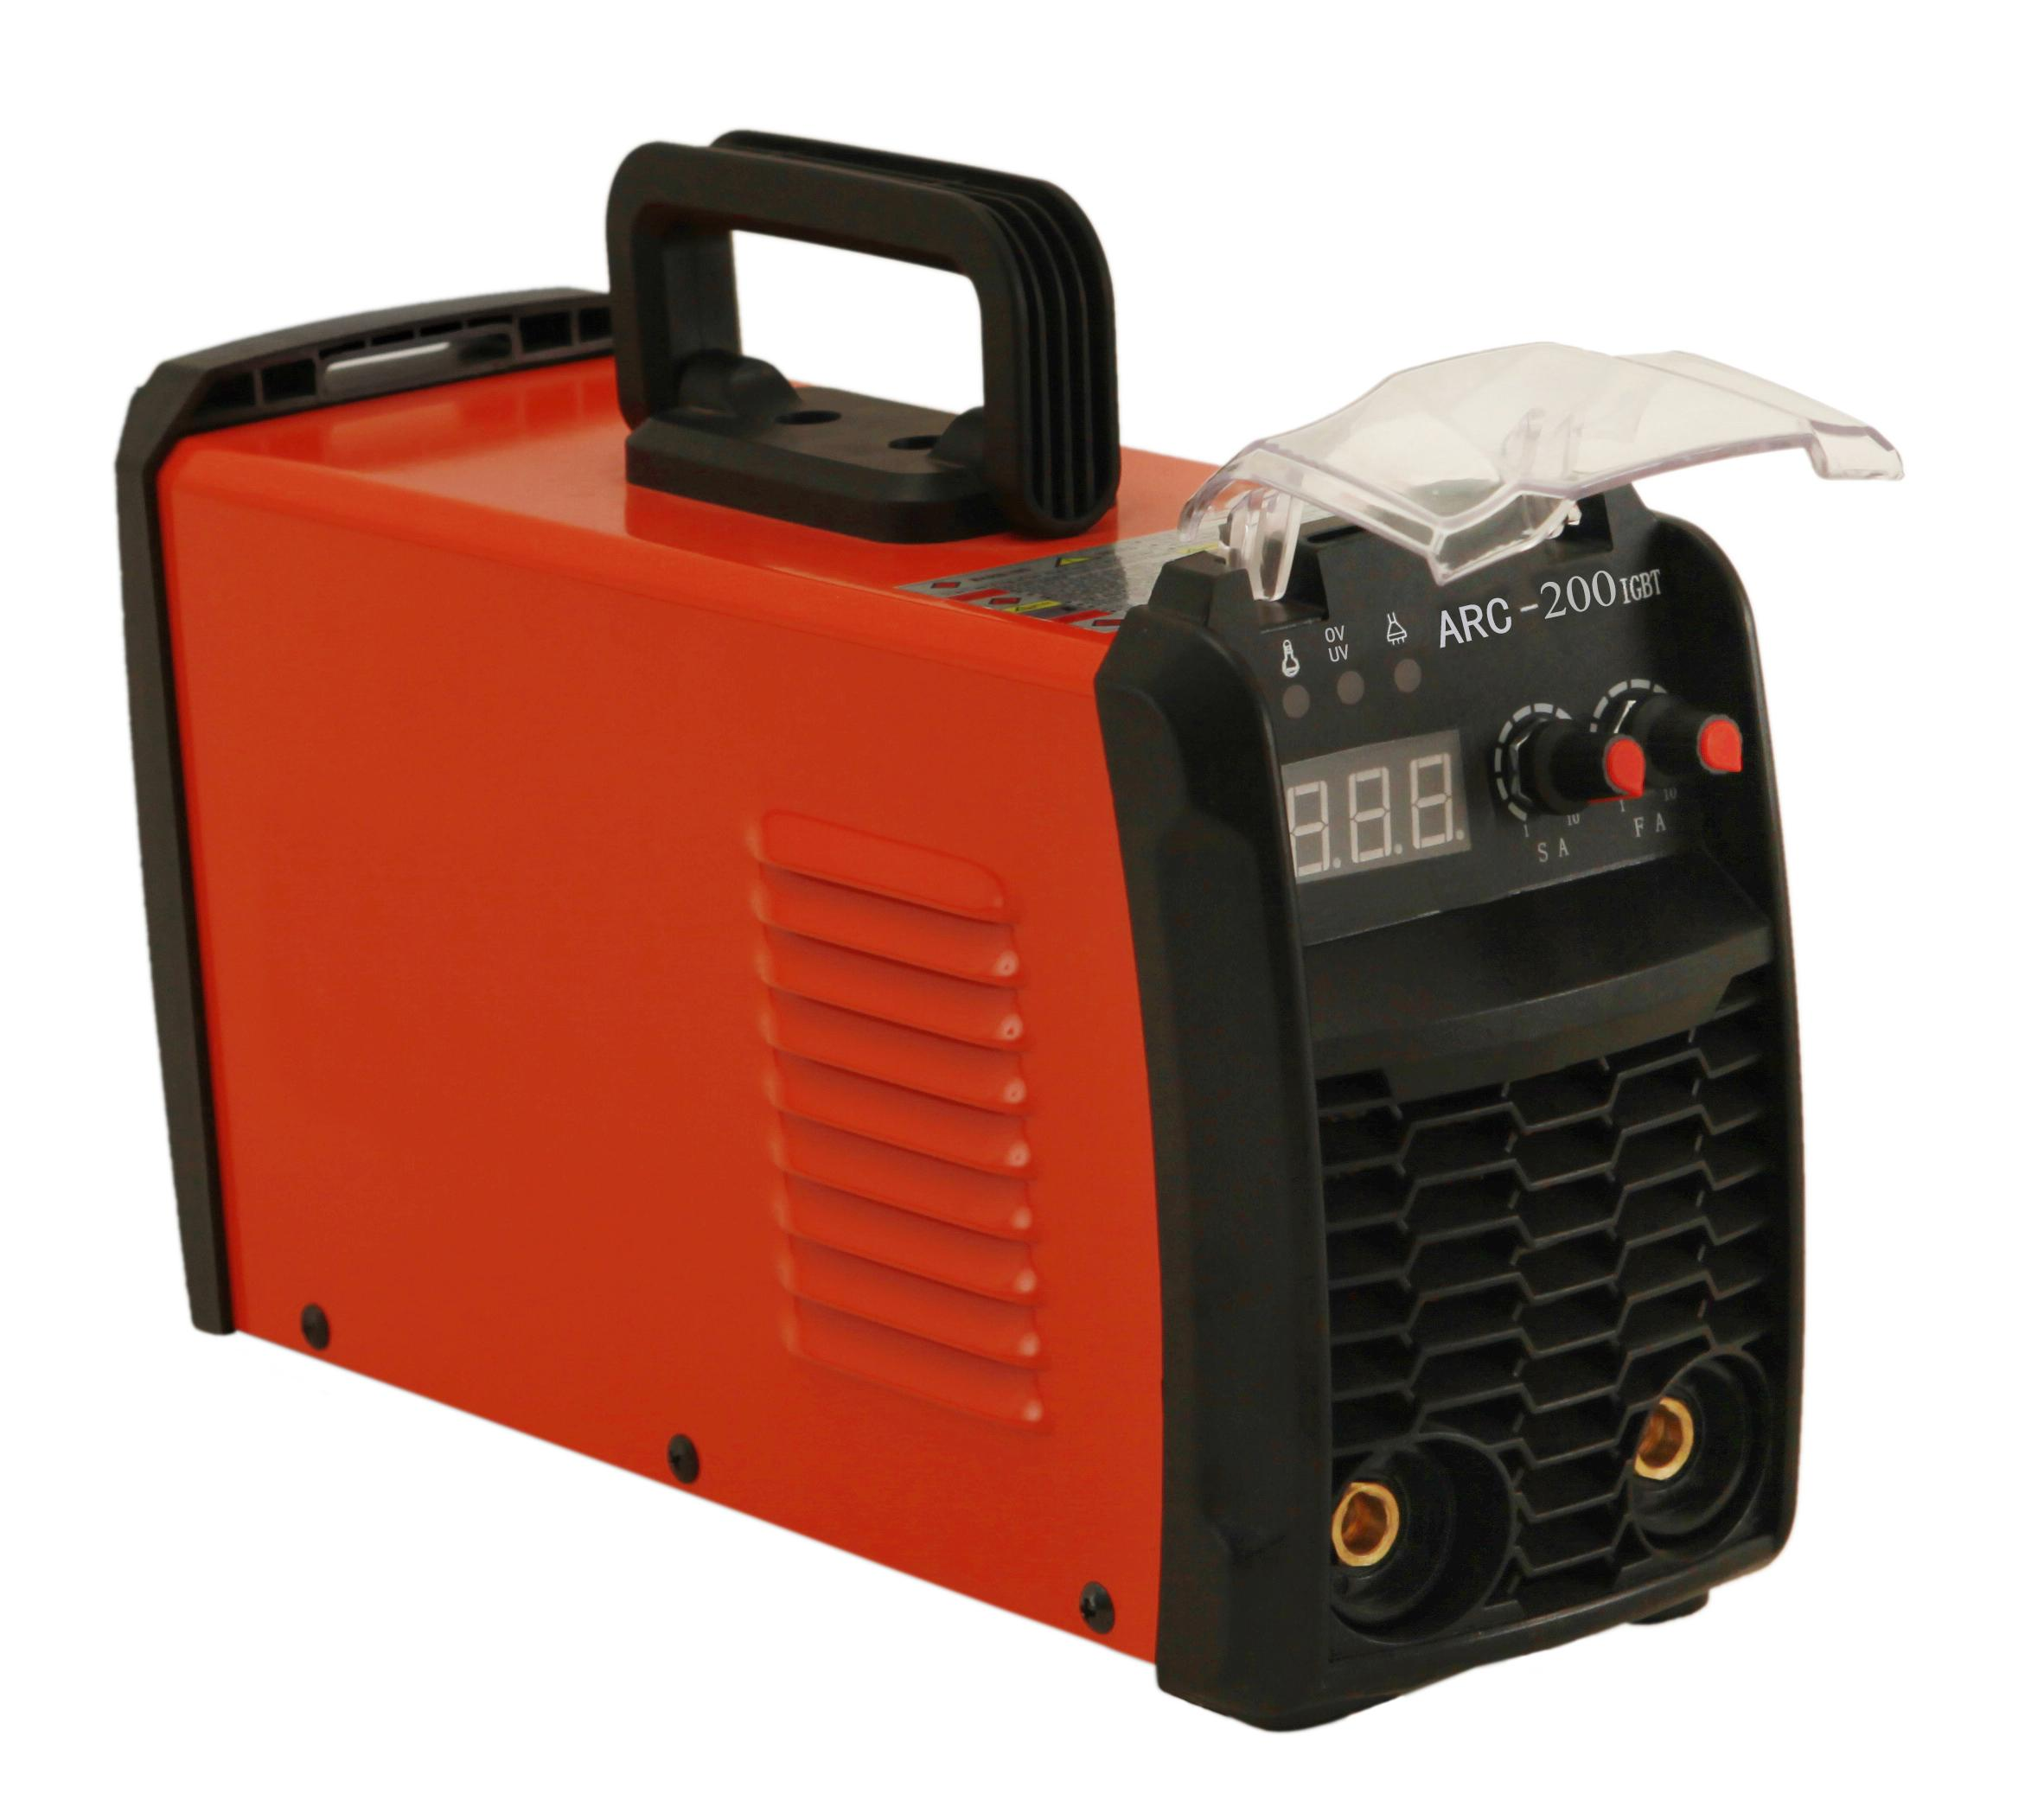 ARC-200 Inverter MMA machine de soudage électrique 220 V